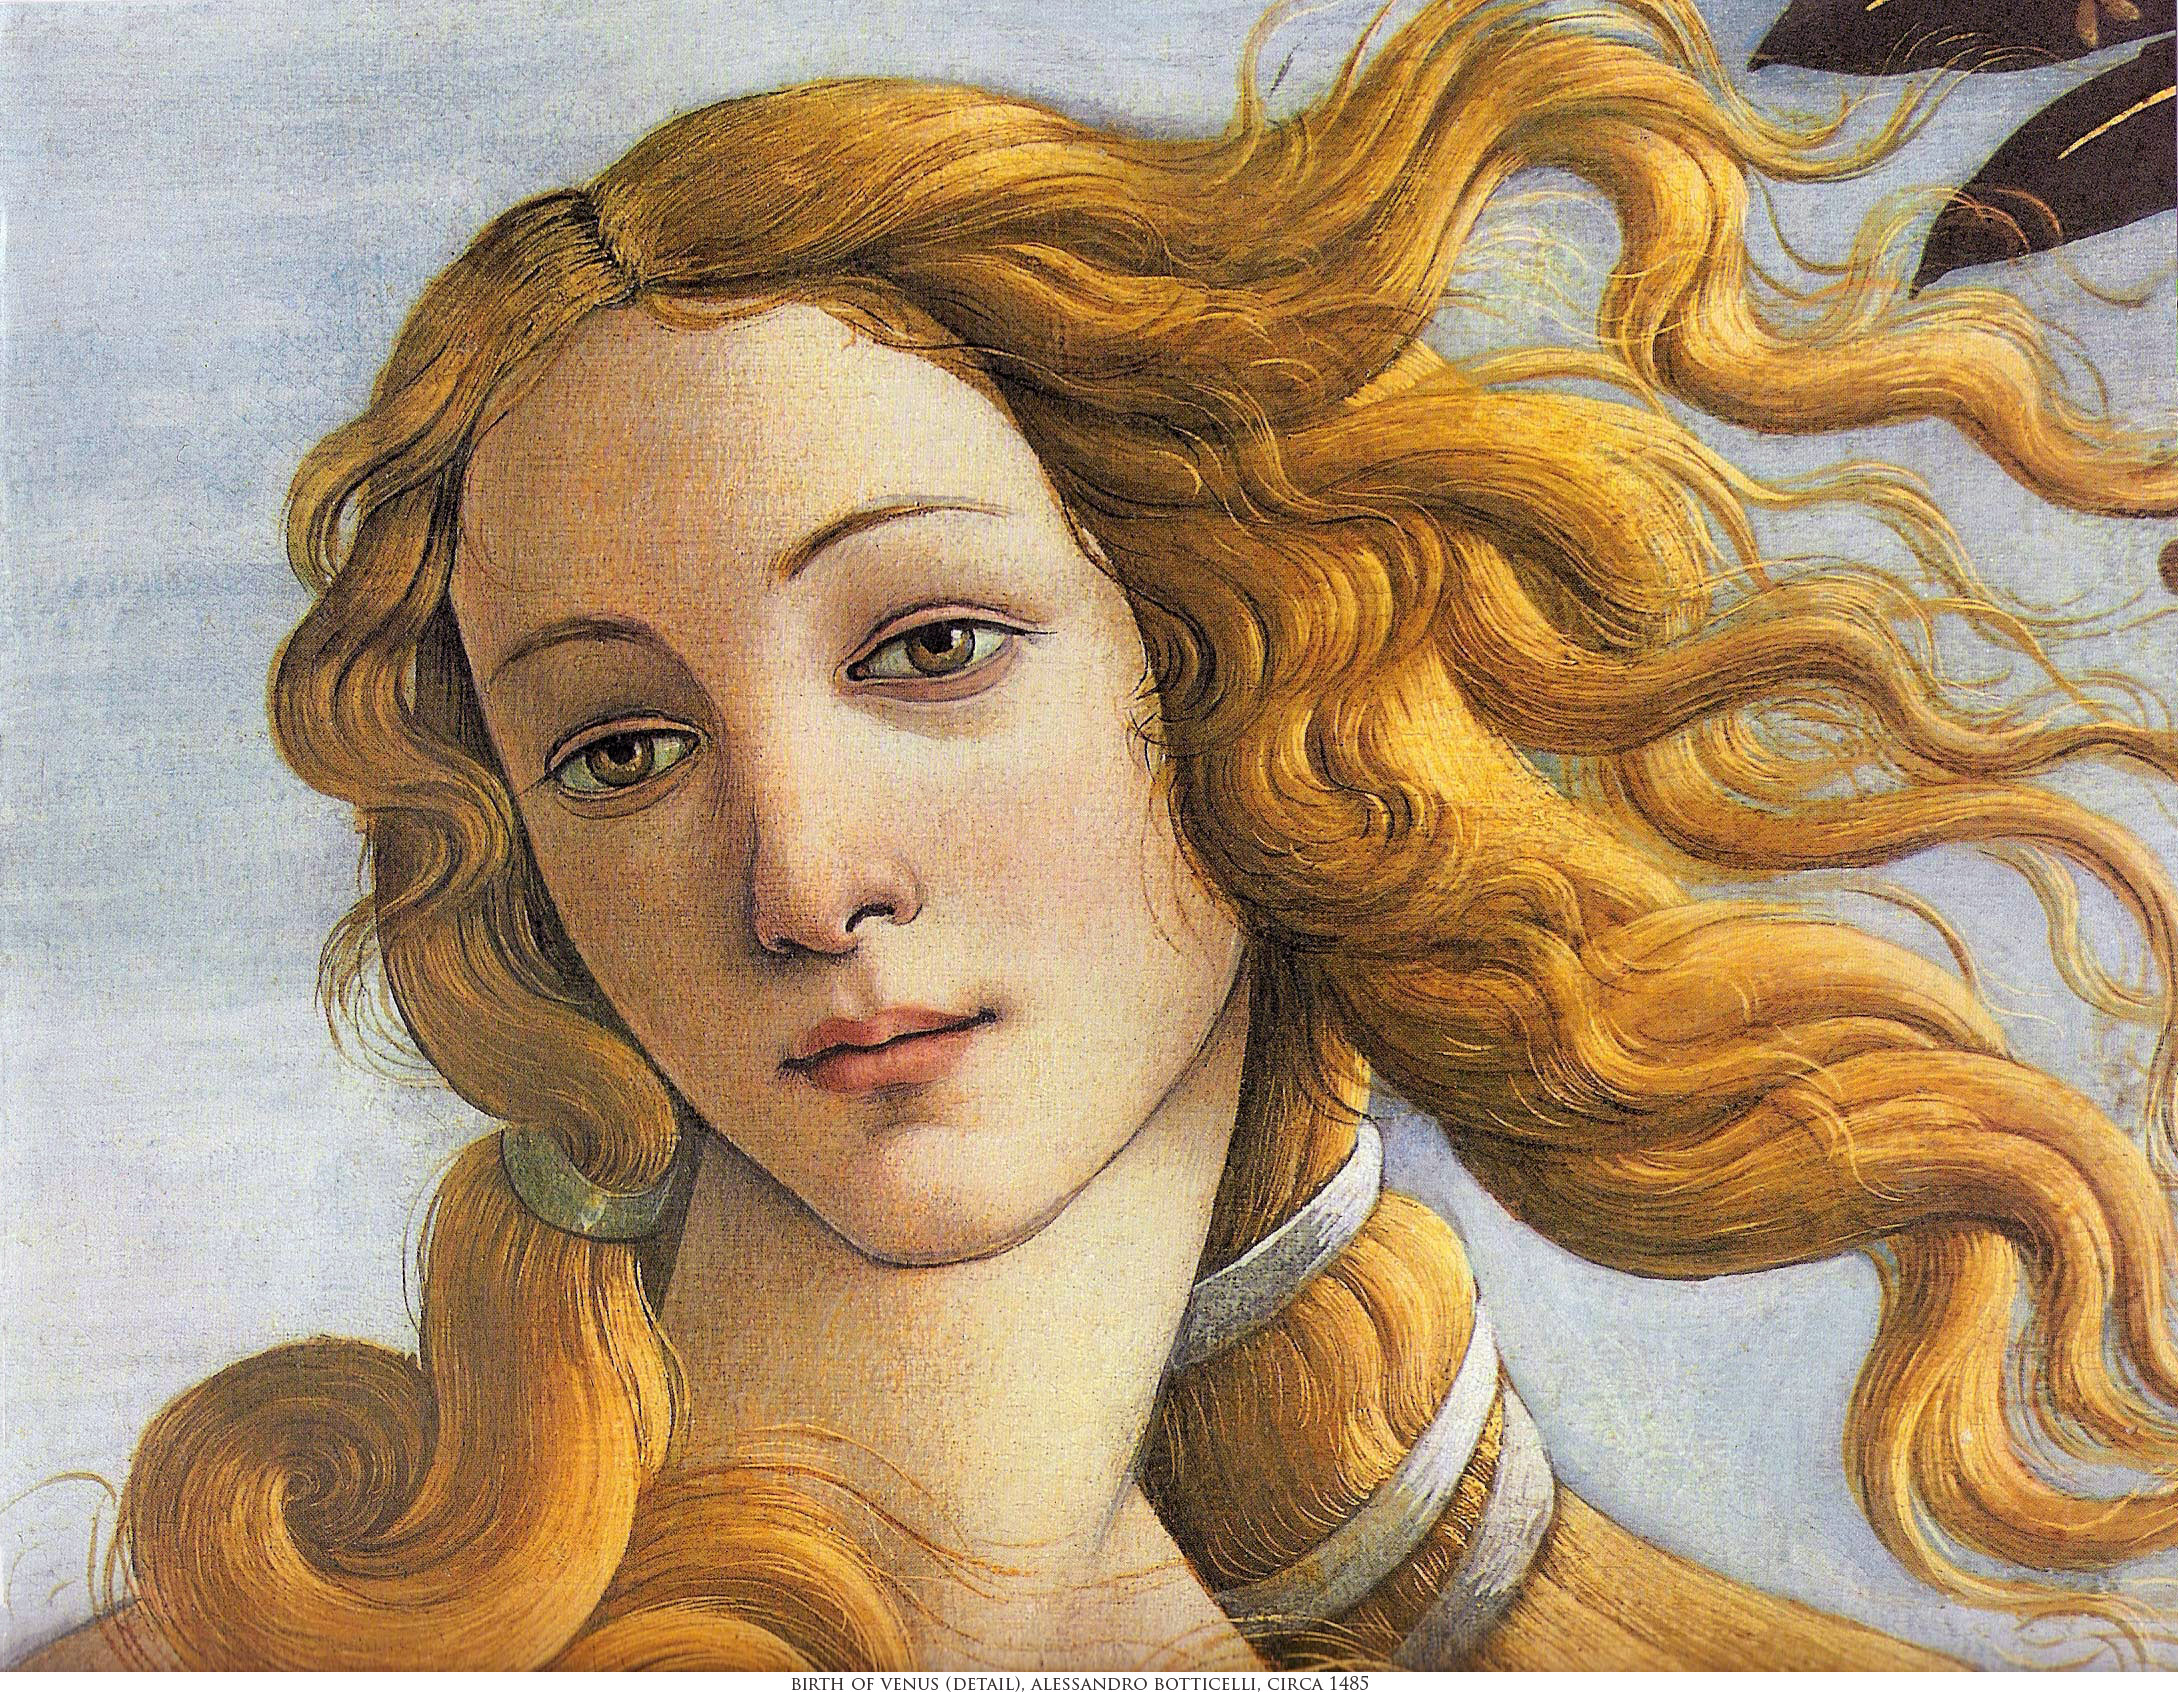 Some Masterpieces from the Public Domain: Botticelli Daystar